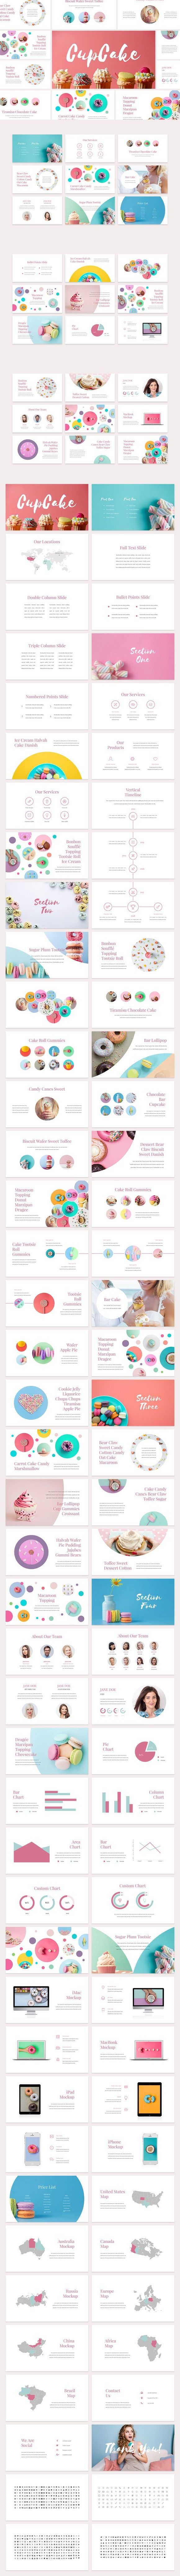 CupCake PowerPoint Template. Presentation Templates. $15.00